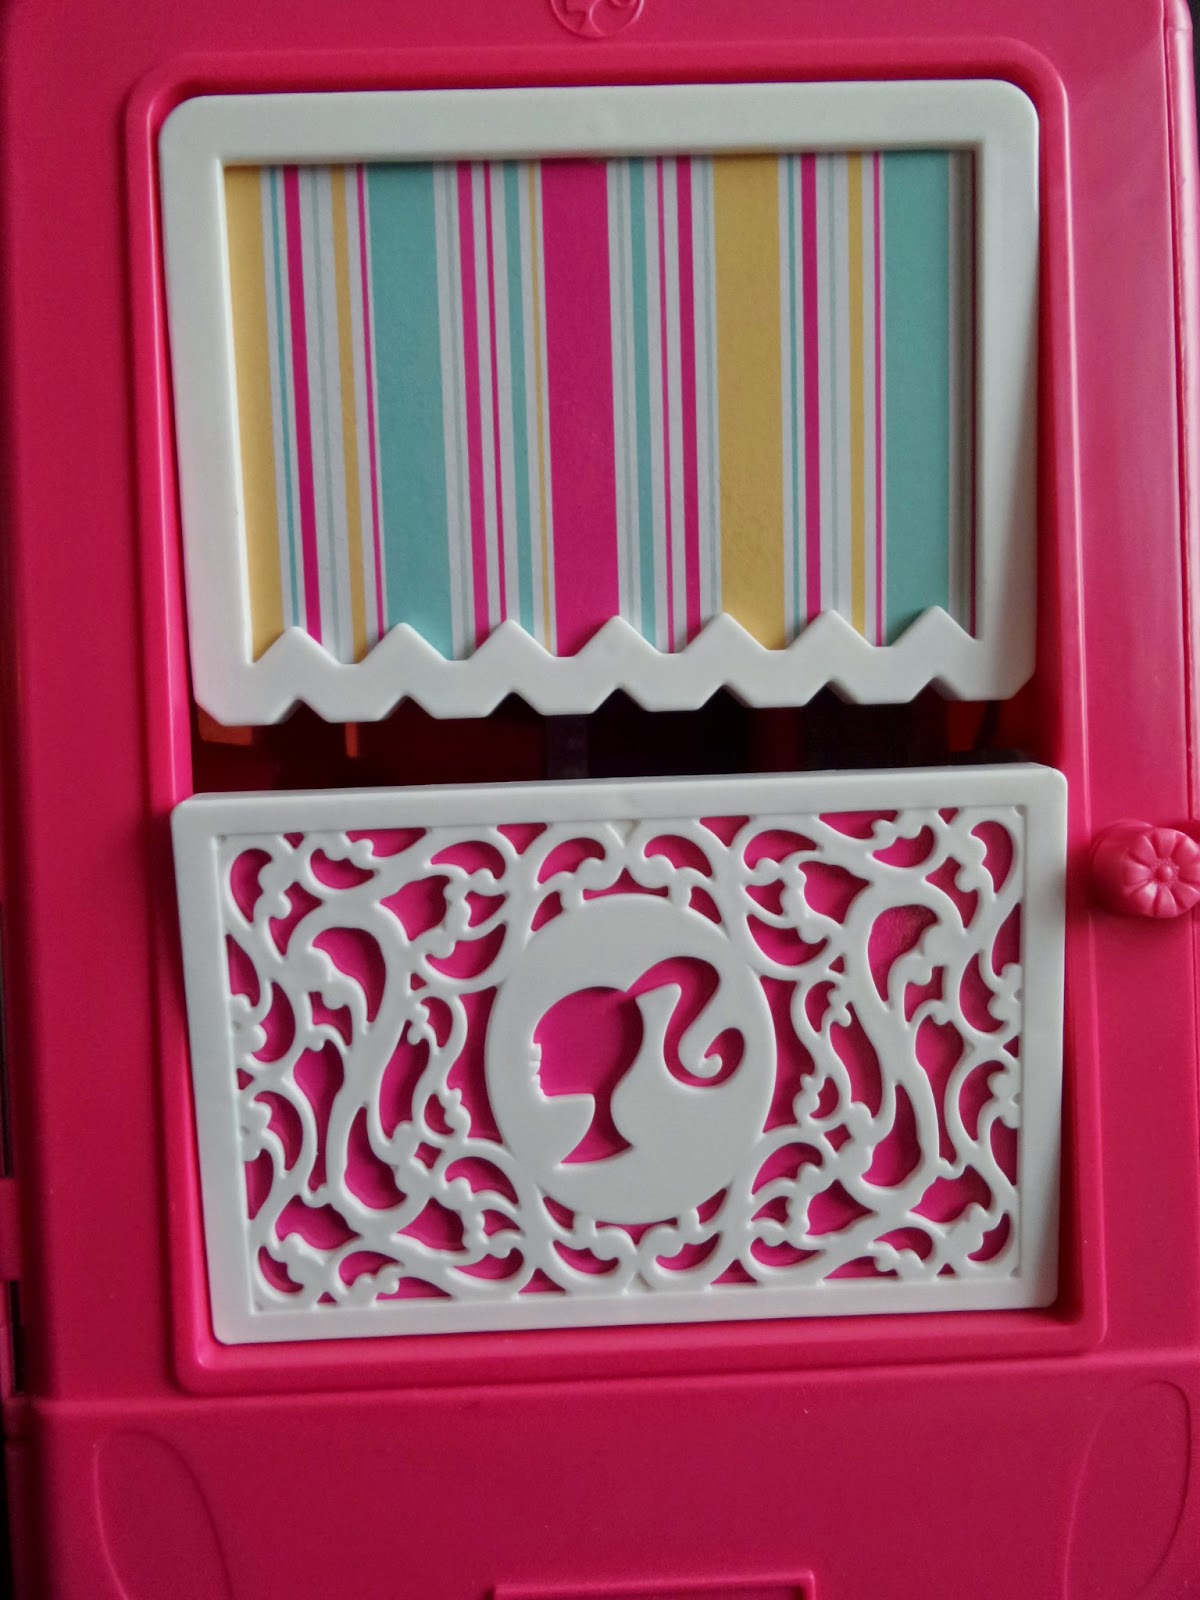 The outside of the back panel of the Barbie Glam Camper #Review